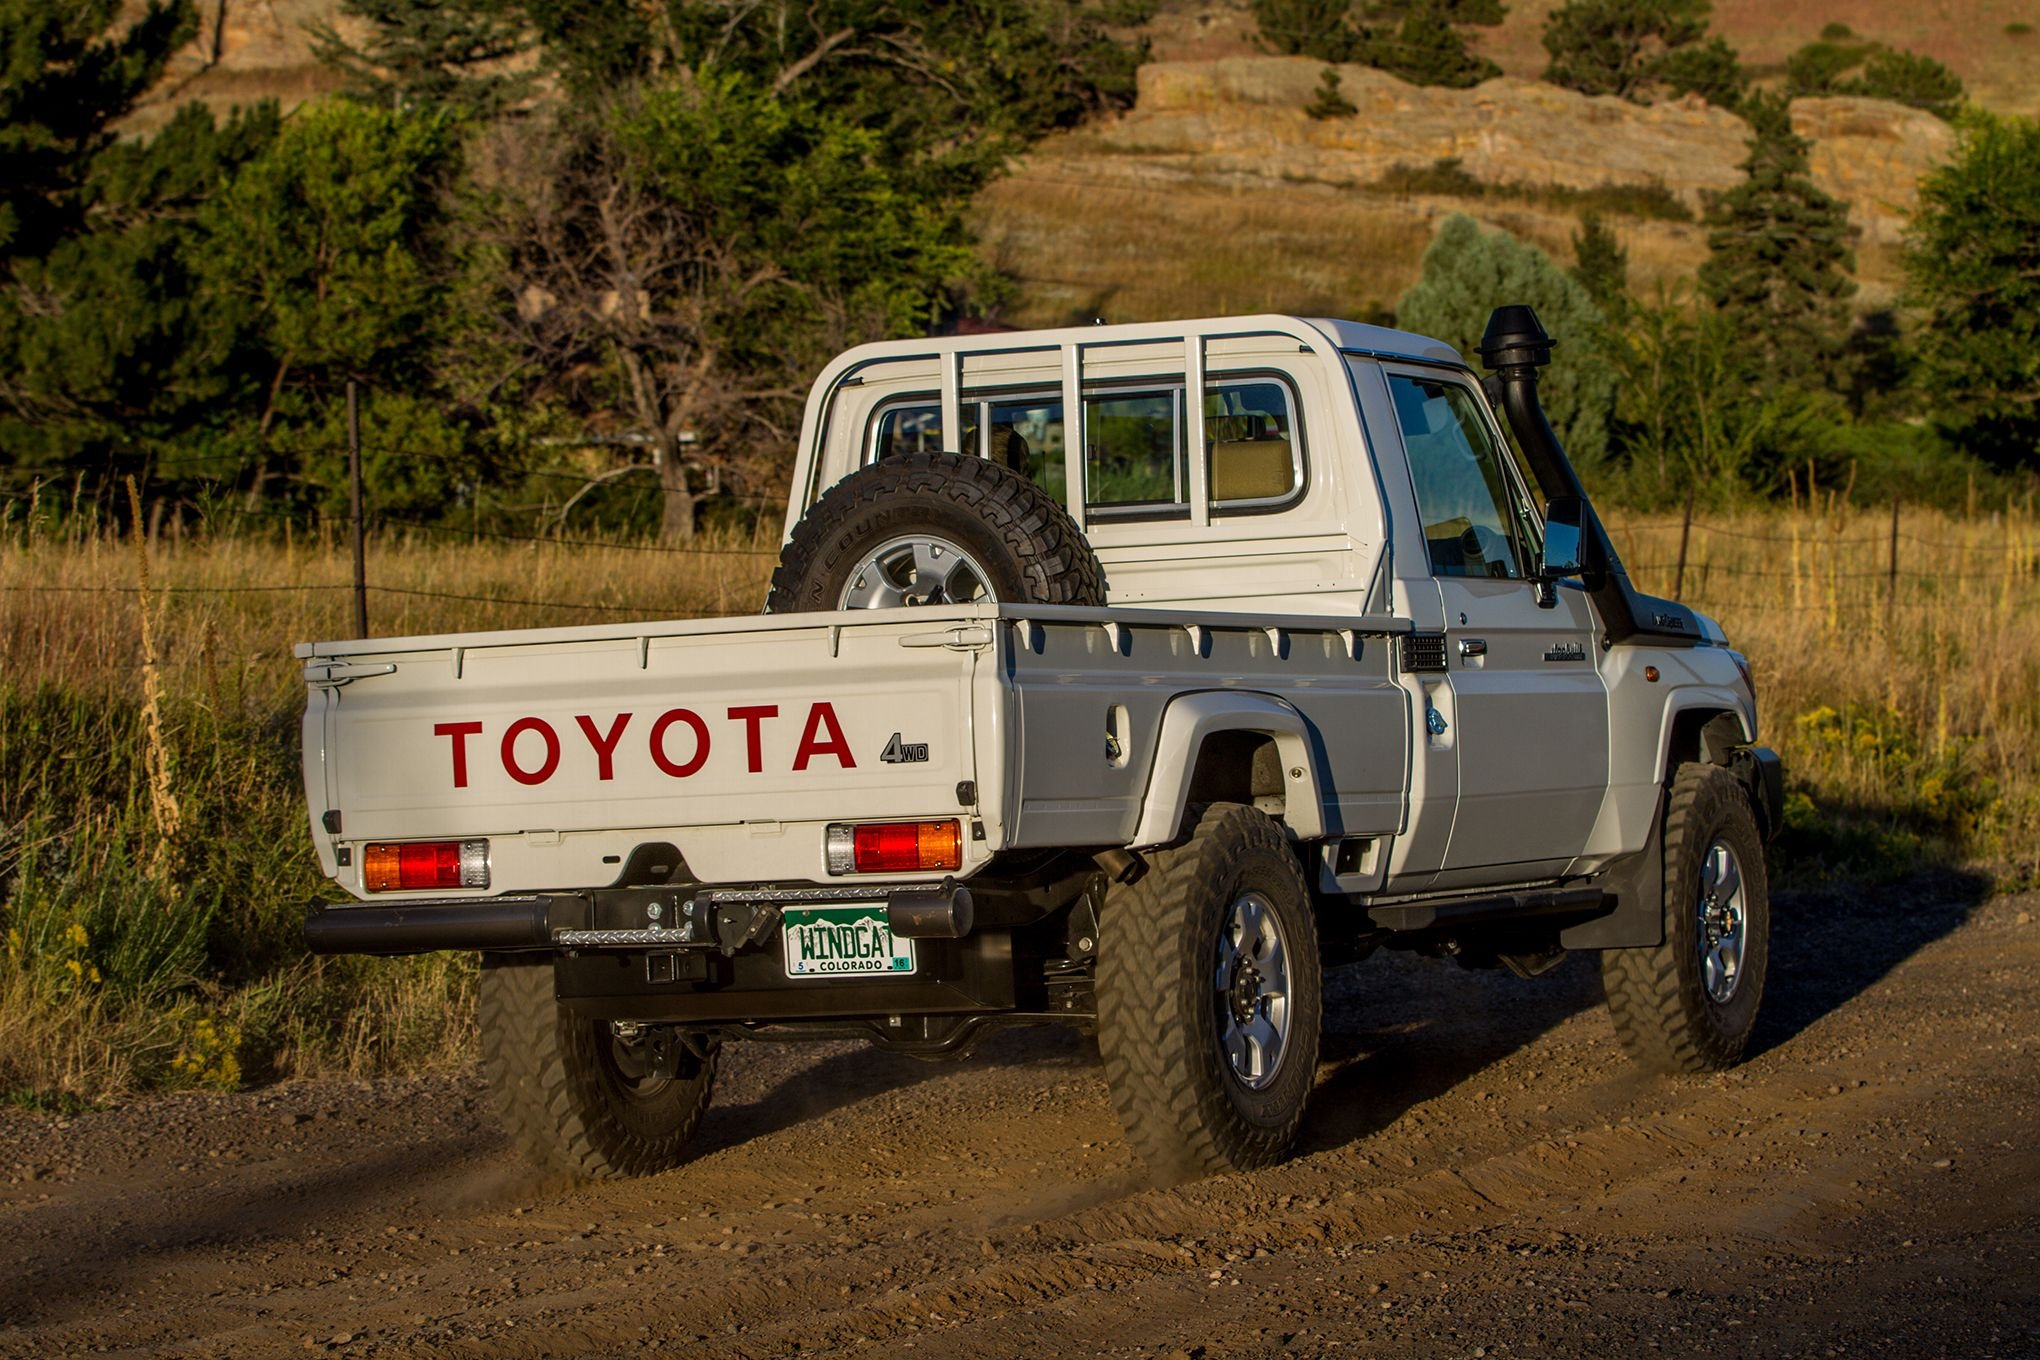 2010 toyota land cruiser pickup offroad 4x4 custom truck. Black Bedroom Furniture Sets. Home Design Ideas